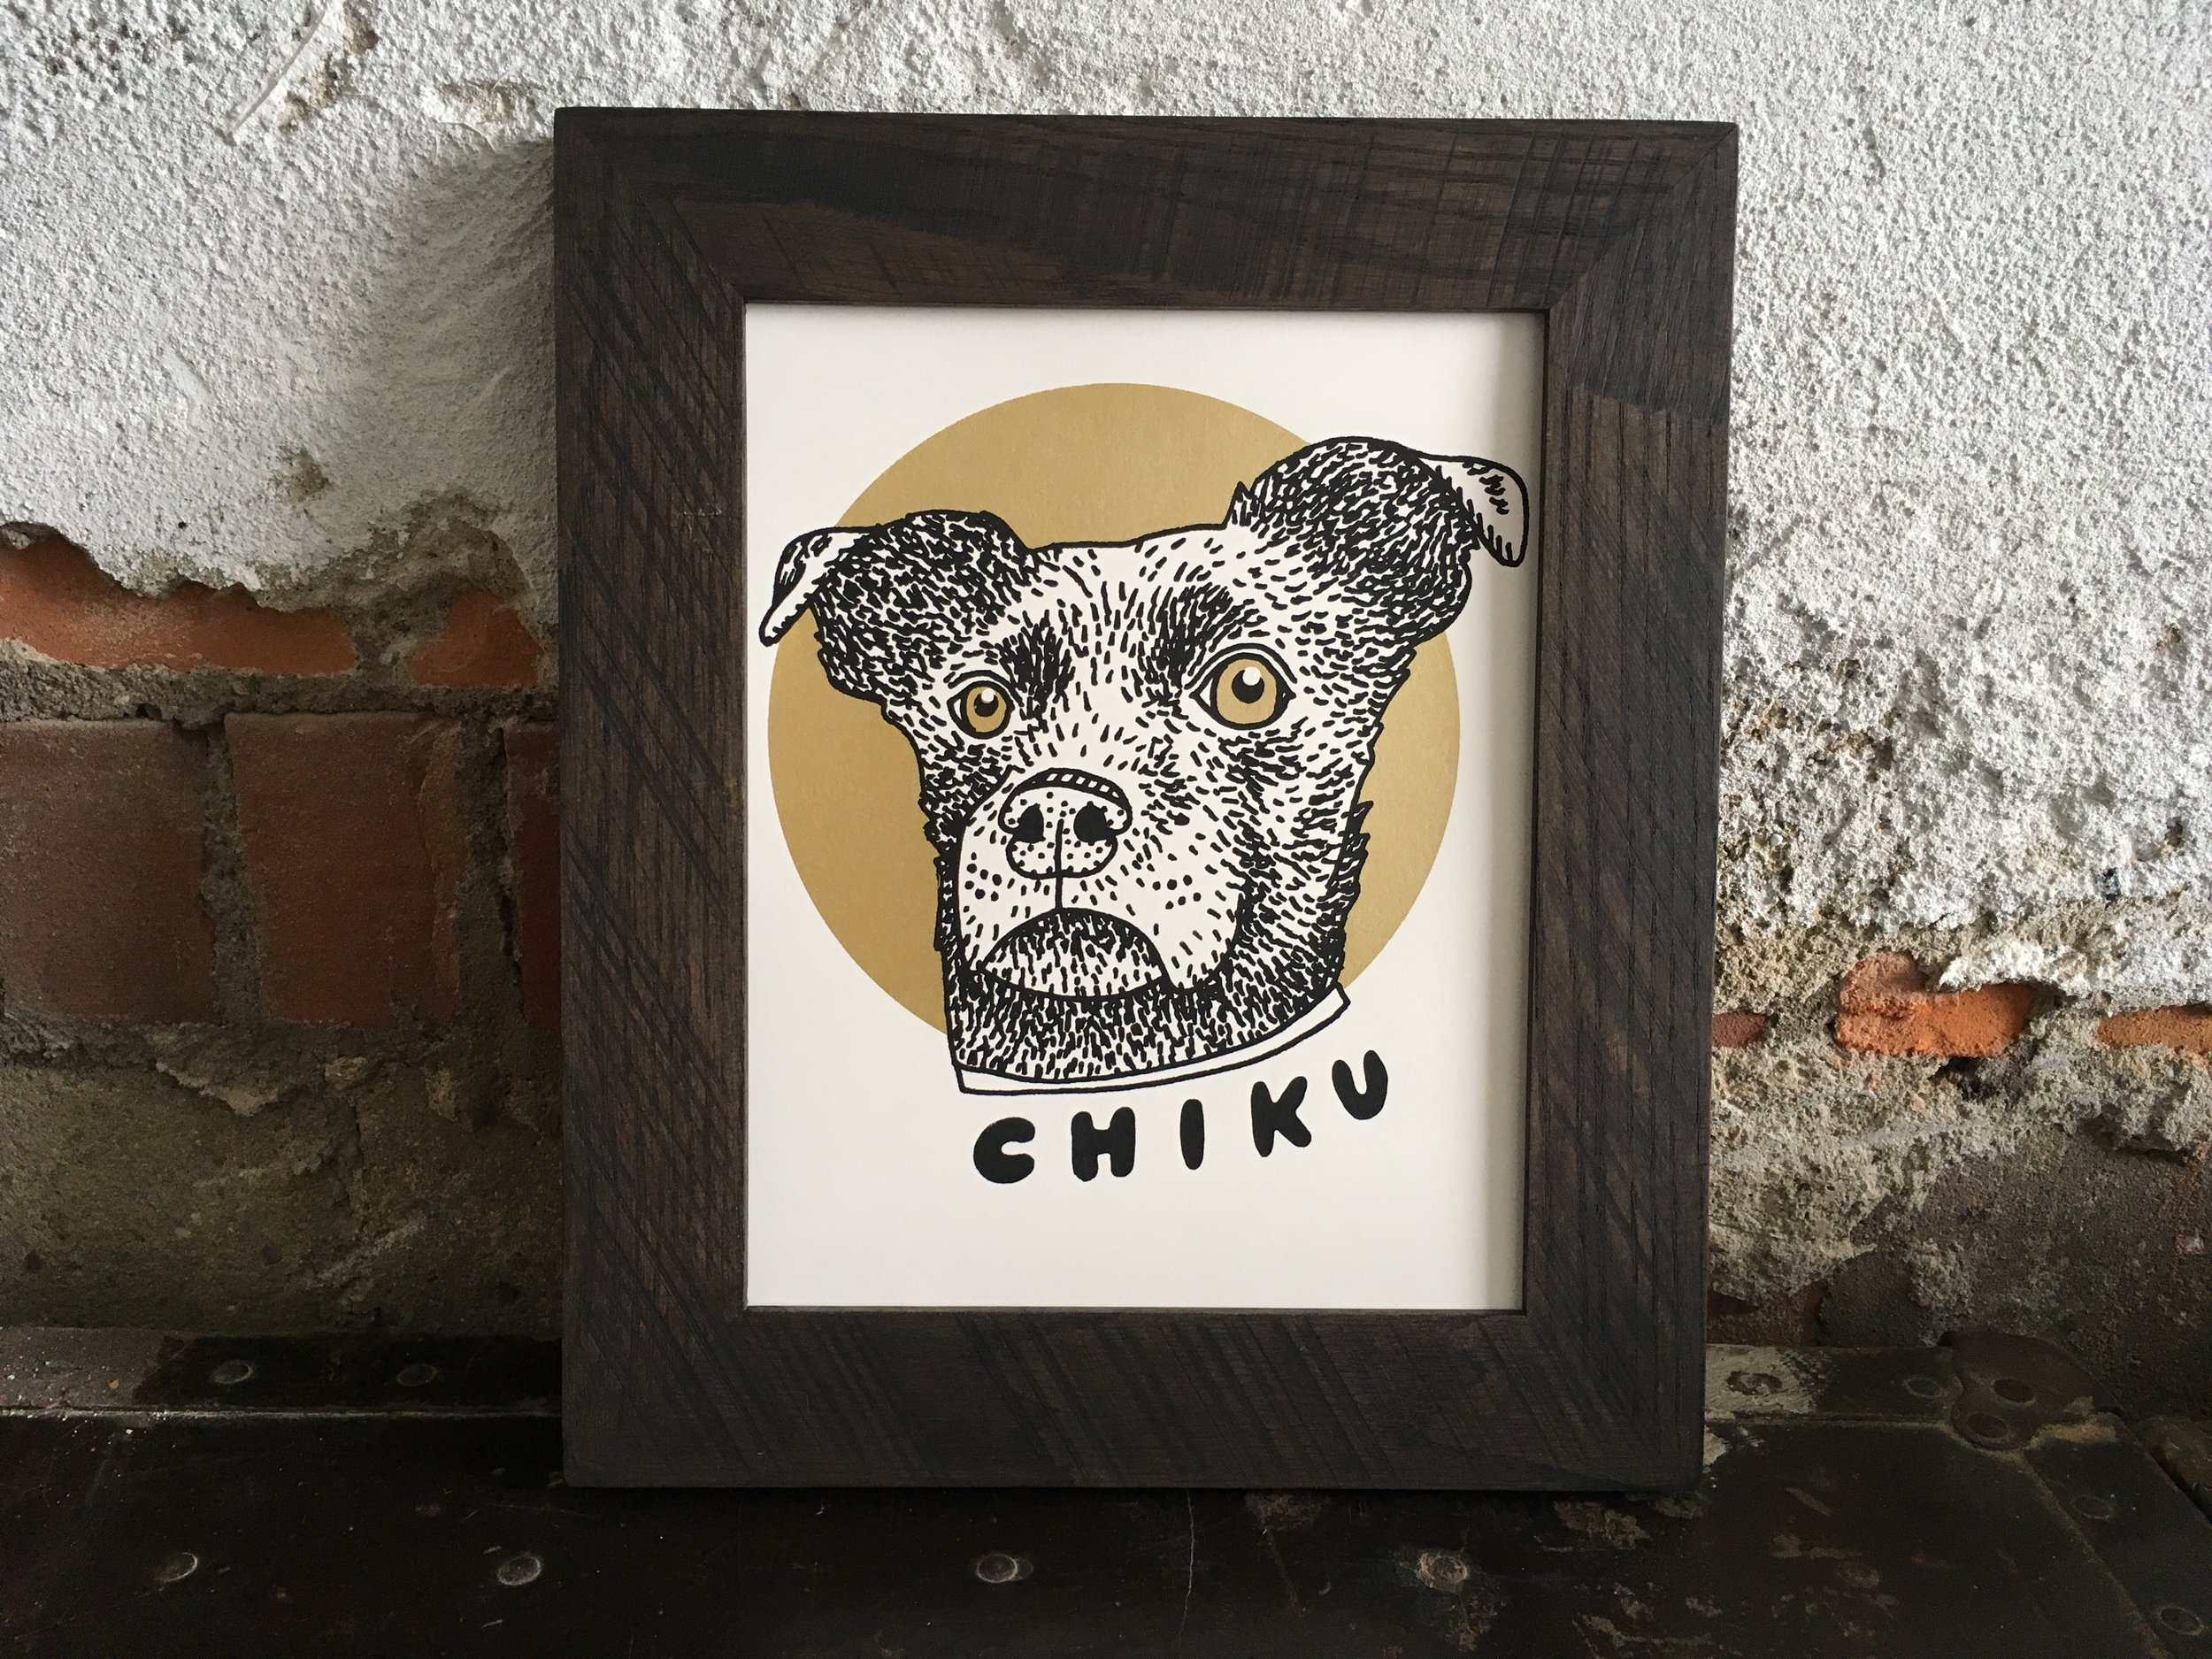 Portraits are available framed and unframed; frames by Mutual Adoration